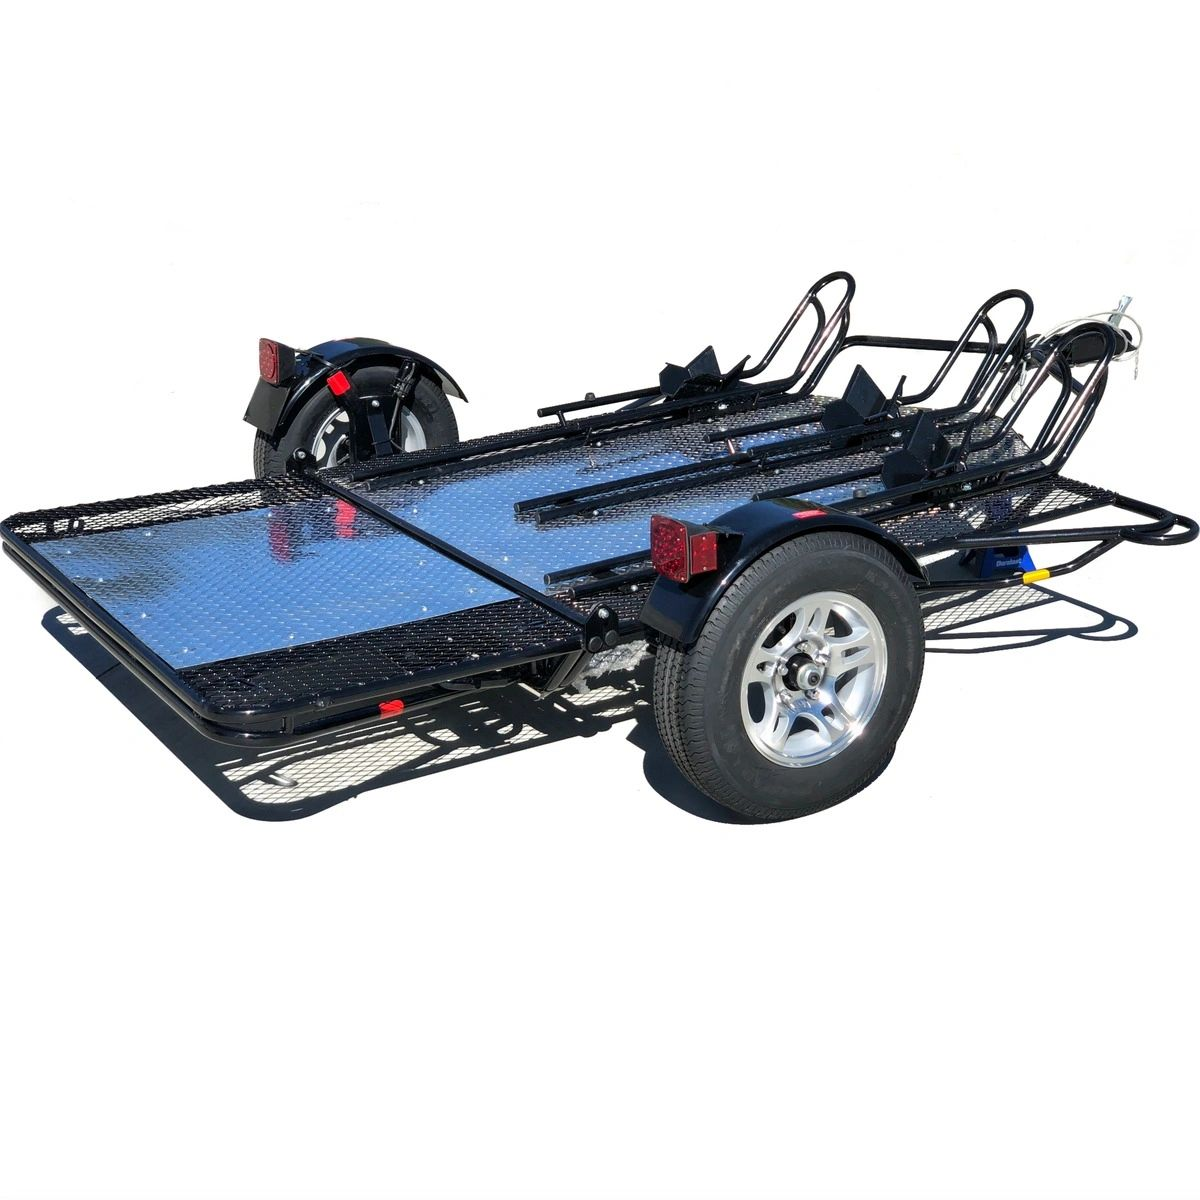 3 Rail Motorcycle Trailer Tow Smart Trailers Car Tow Dolly